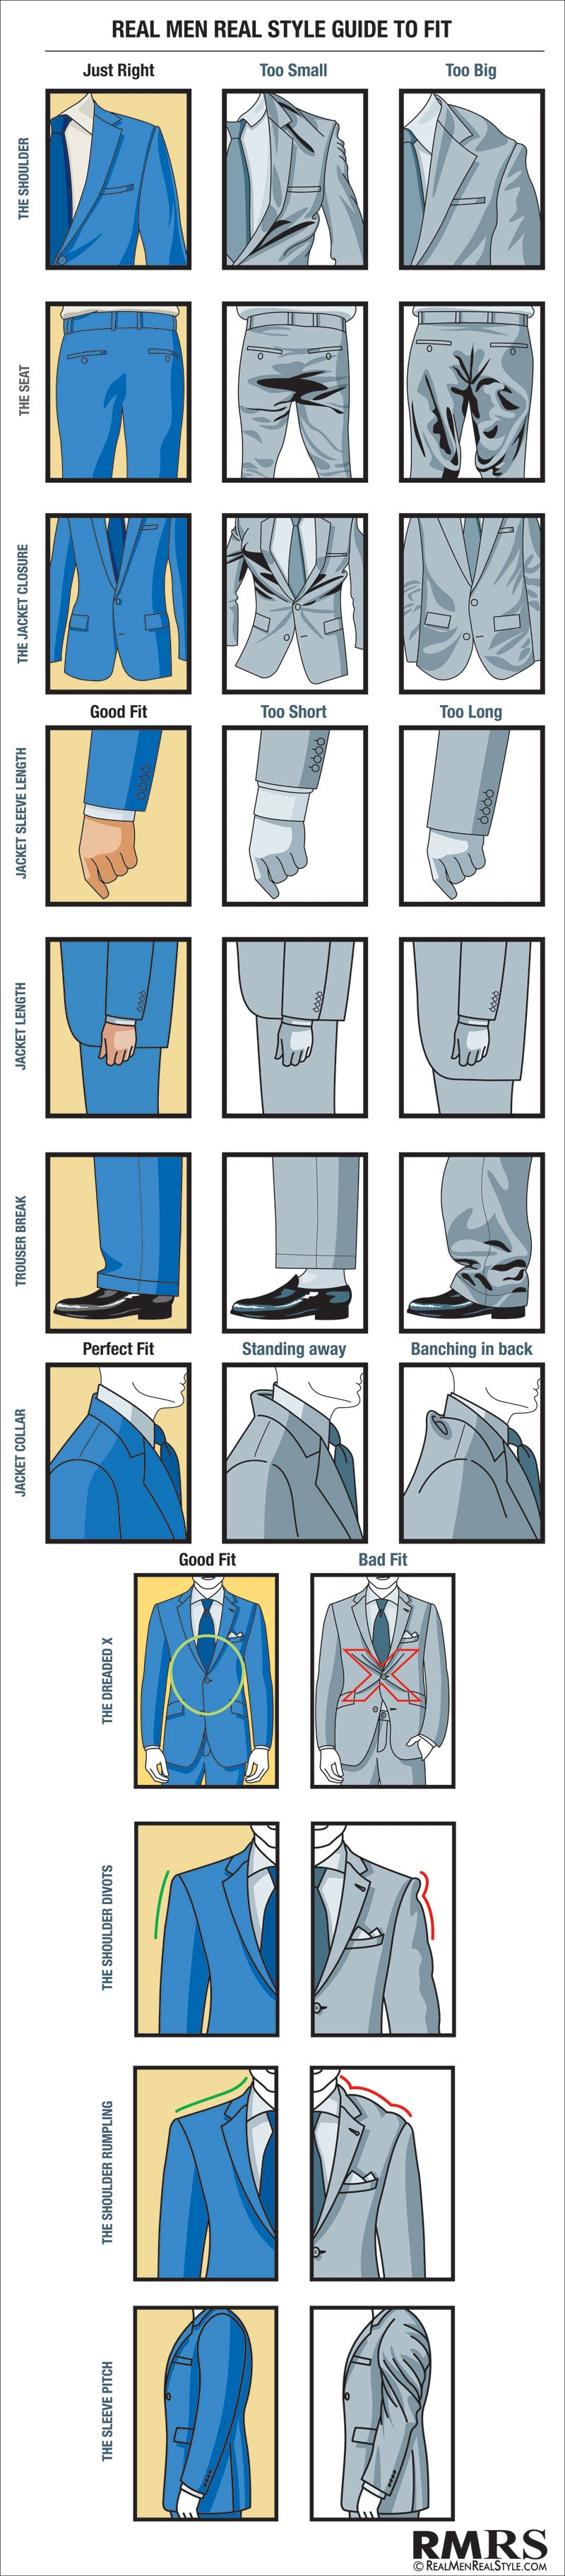 Guide to Better Fitting Suit